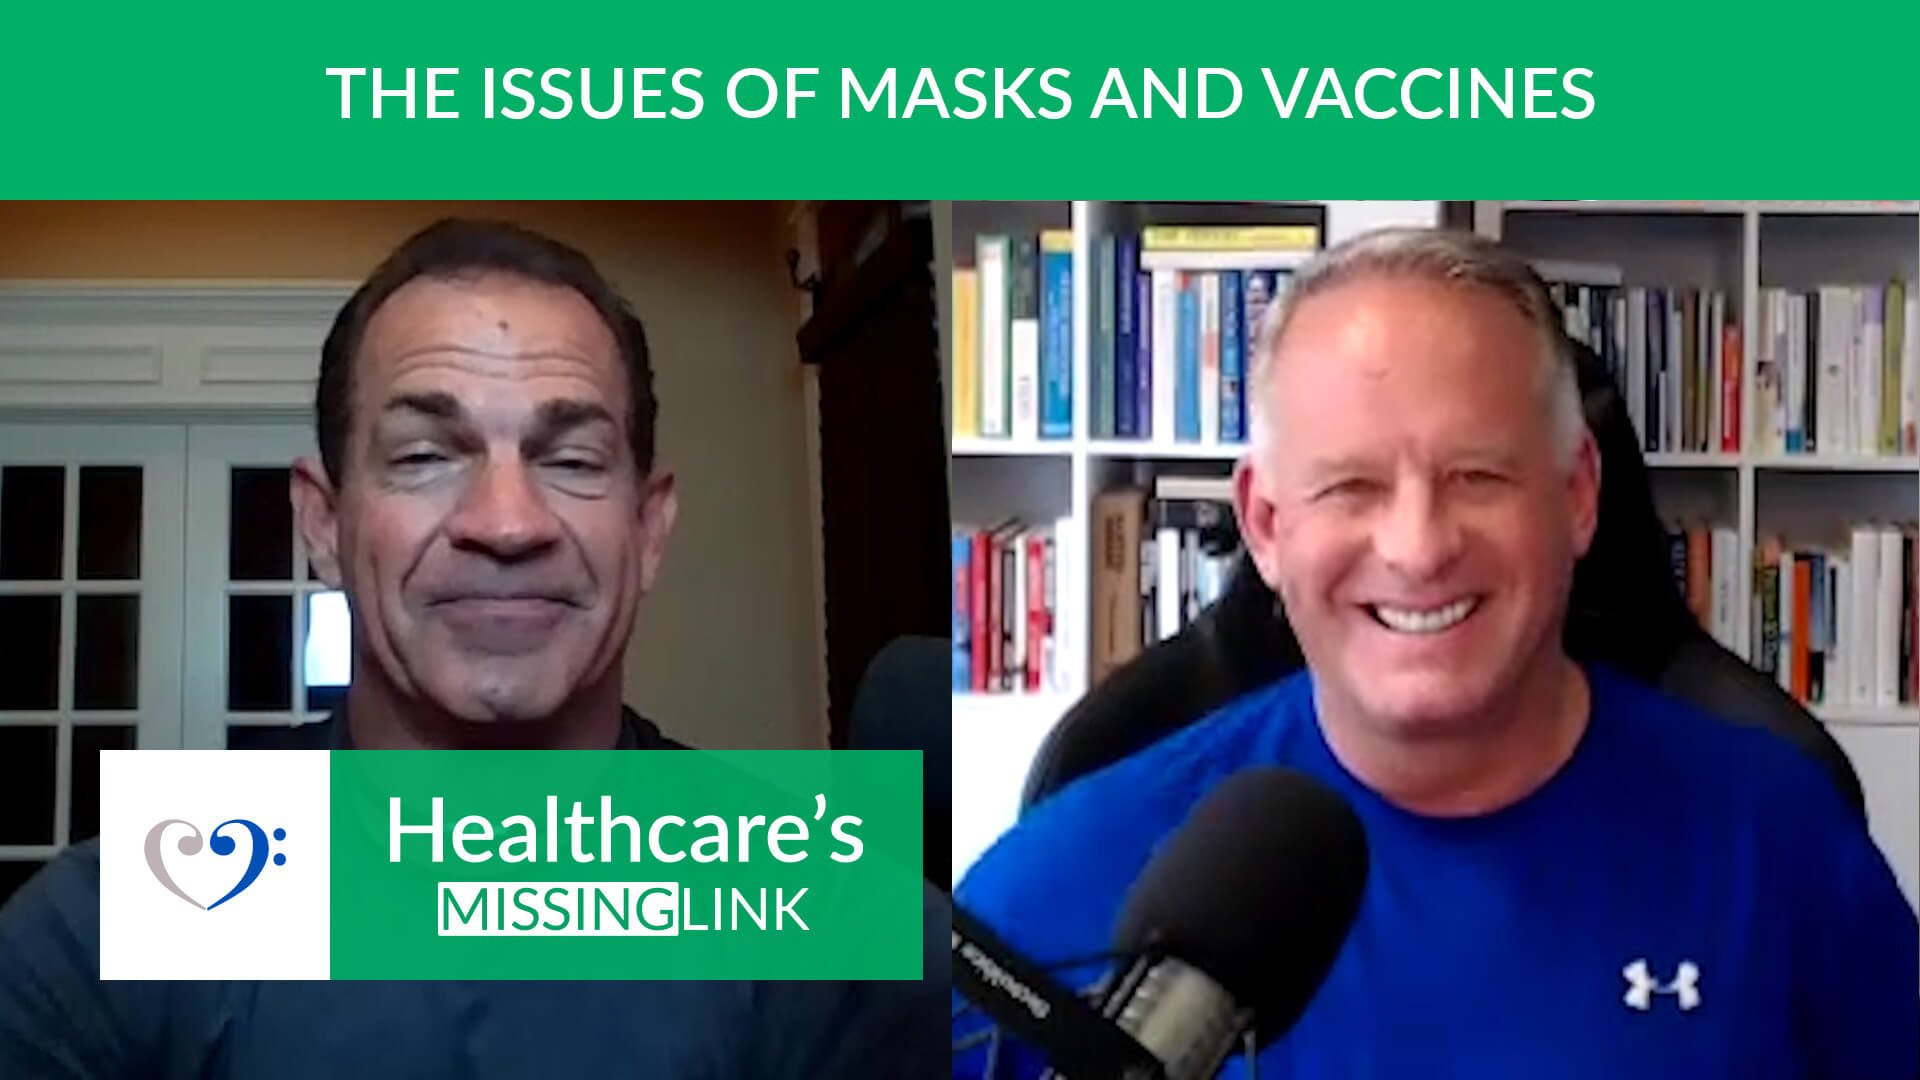 Ep 38: The Issues of Masks and Vaccines ft. Dr. Jim Meeham